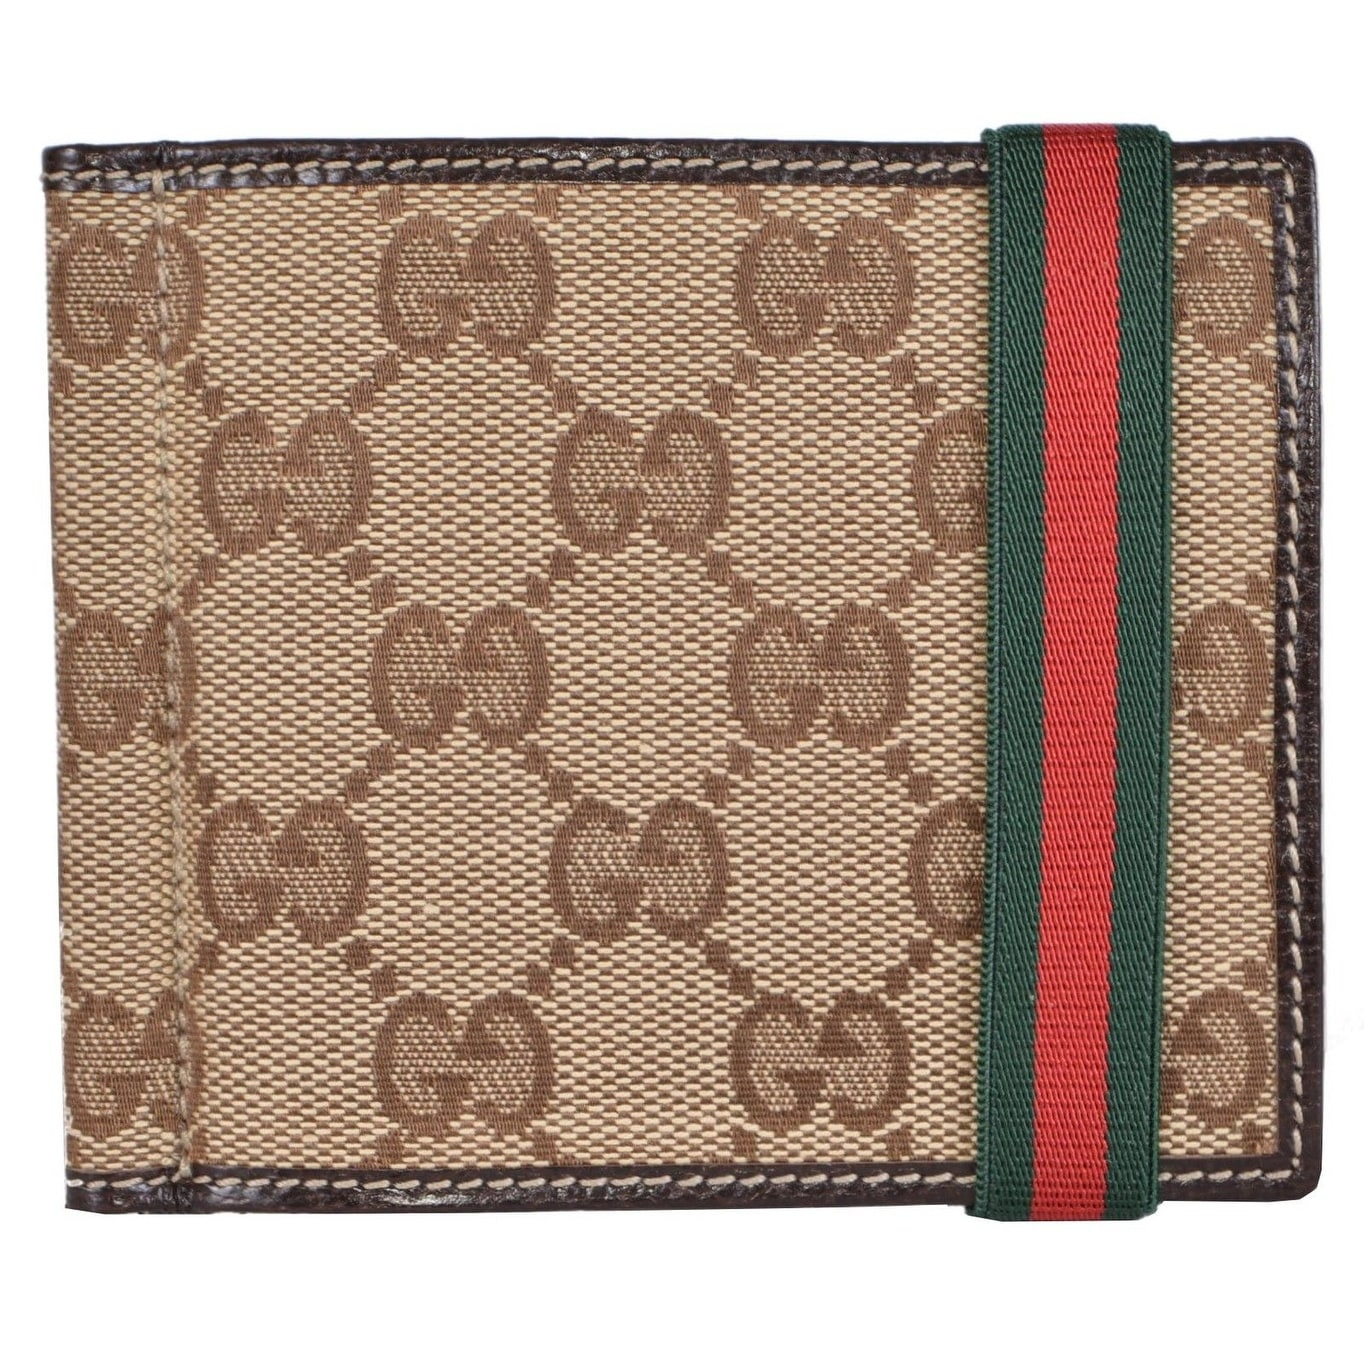 7cc961b58a3 Shop Gucci Men s 224187 Beige Canvas GG Red Green Web Band Money Clip Wallet  - Free Shipping Today - Overstock - 12371905